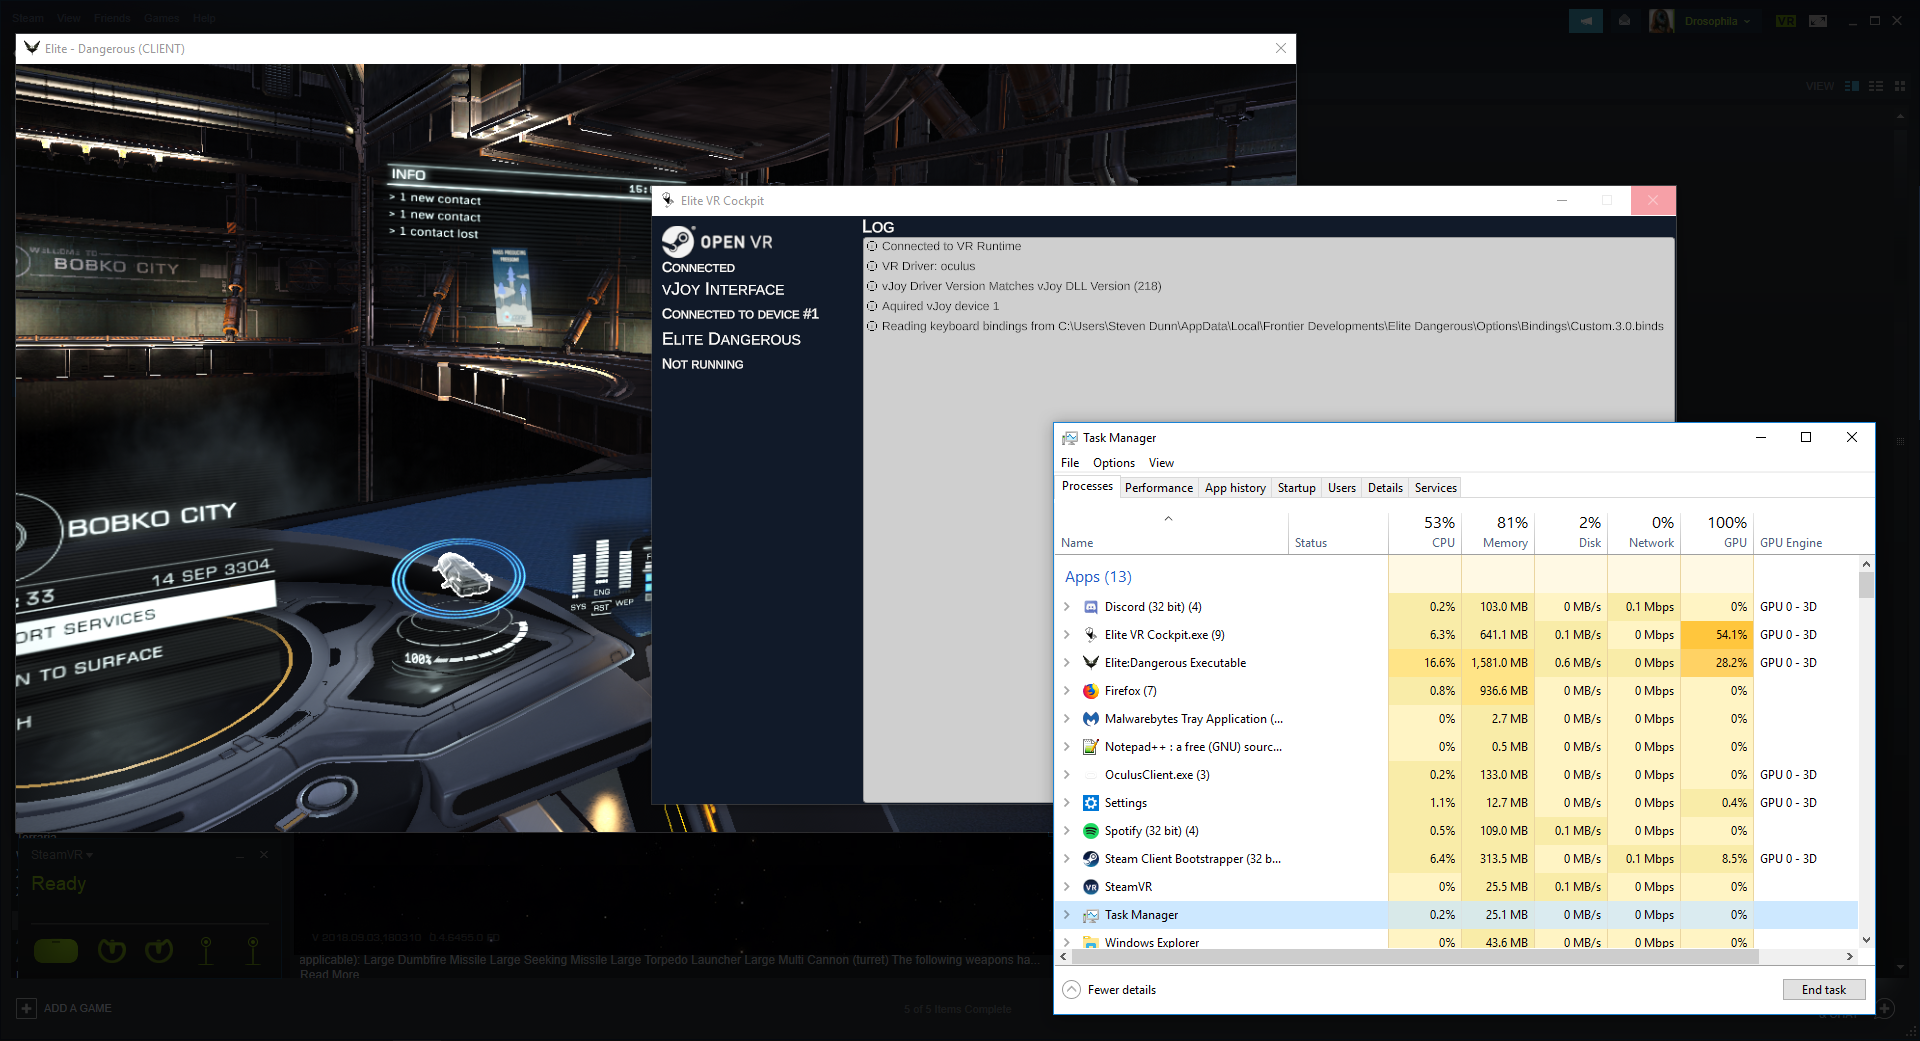 Unable to detect Elite Dangerous and high GPU usage · Issue #28